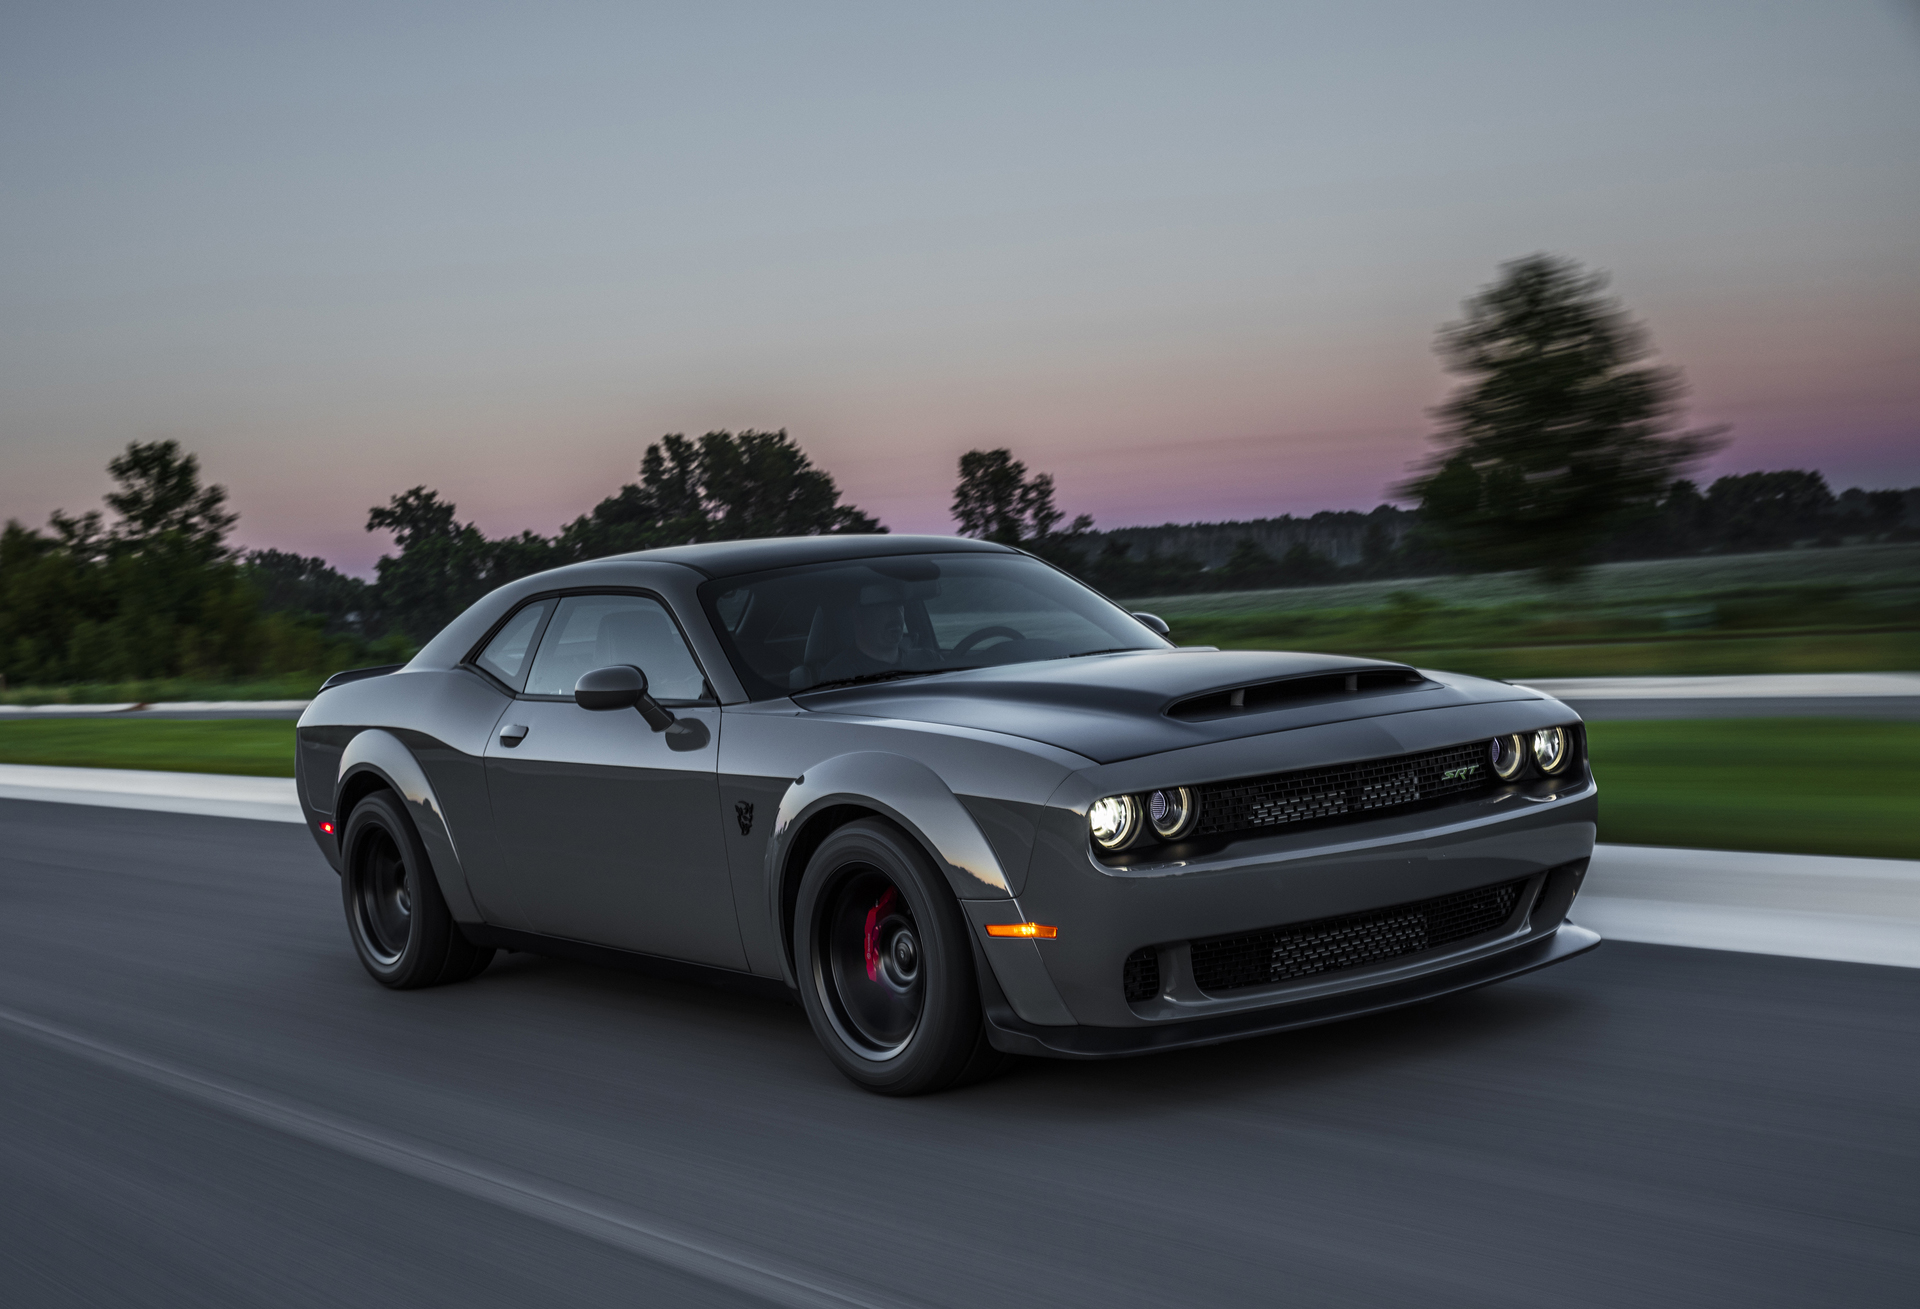 2018 Dodge Challenger Preview